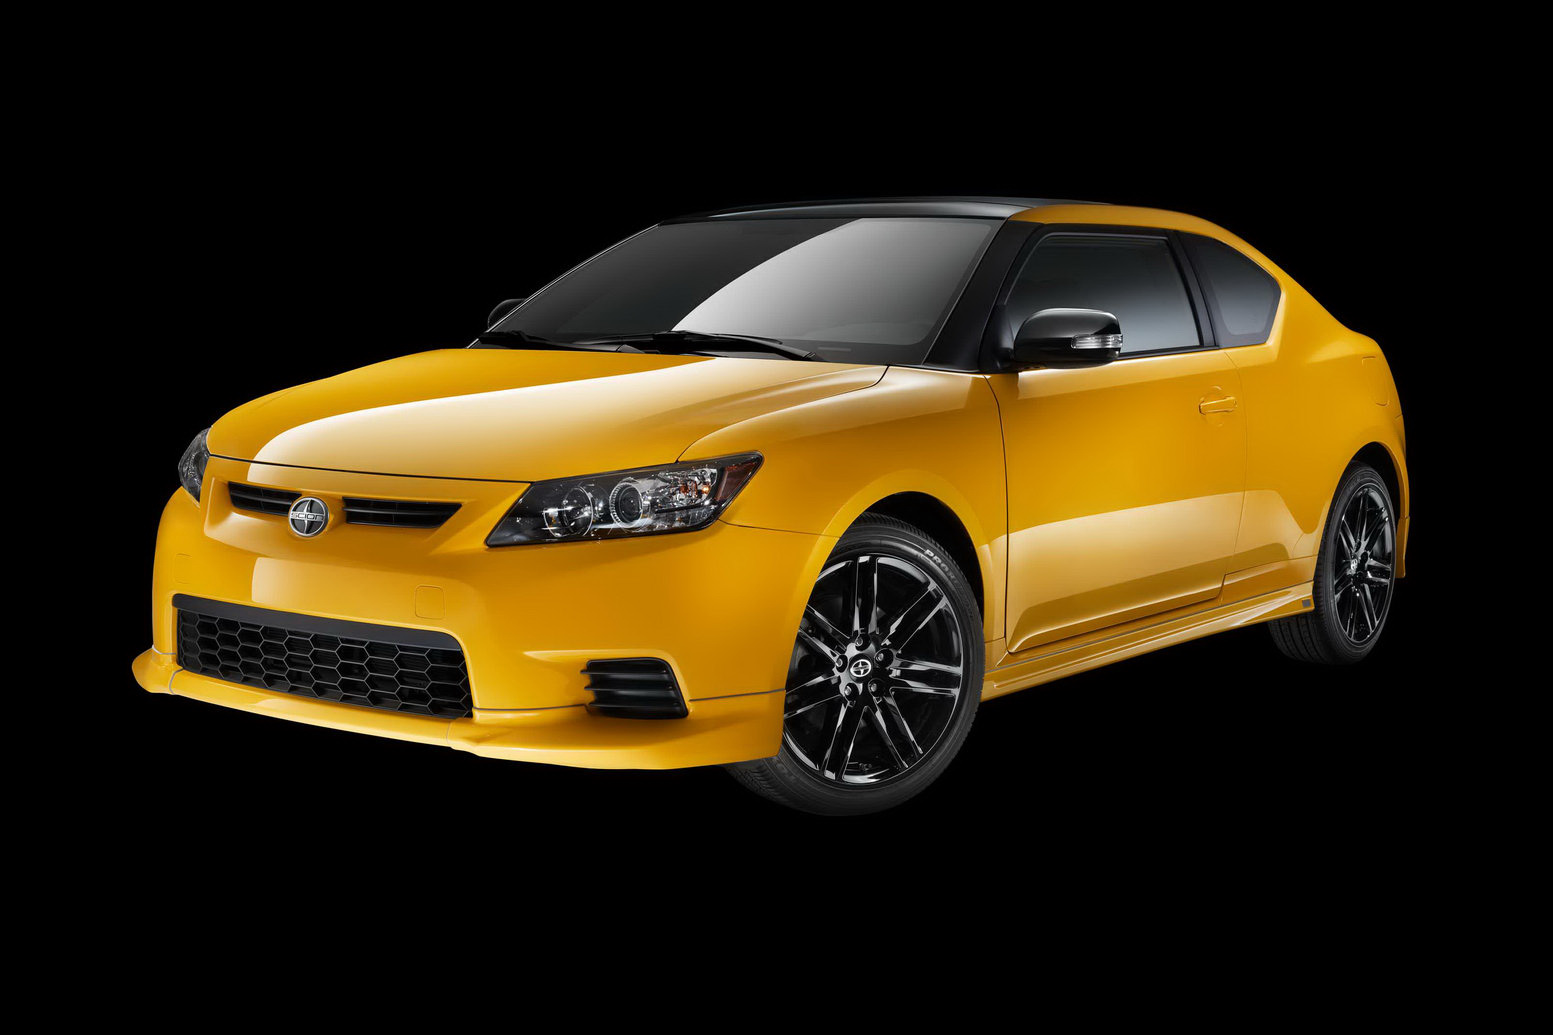 2012 Scion tC Version 2 Scion Car with Sophisticated Upgradation Tools